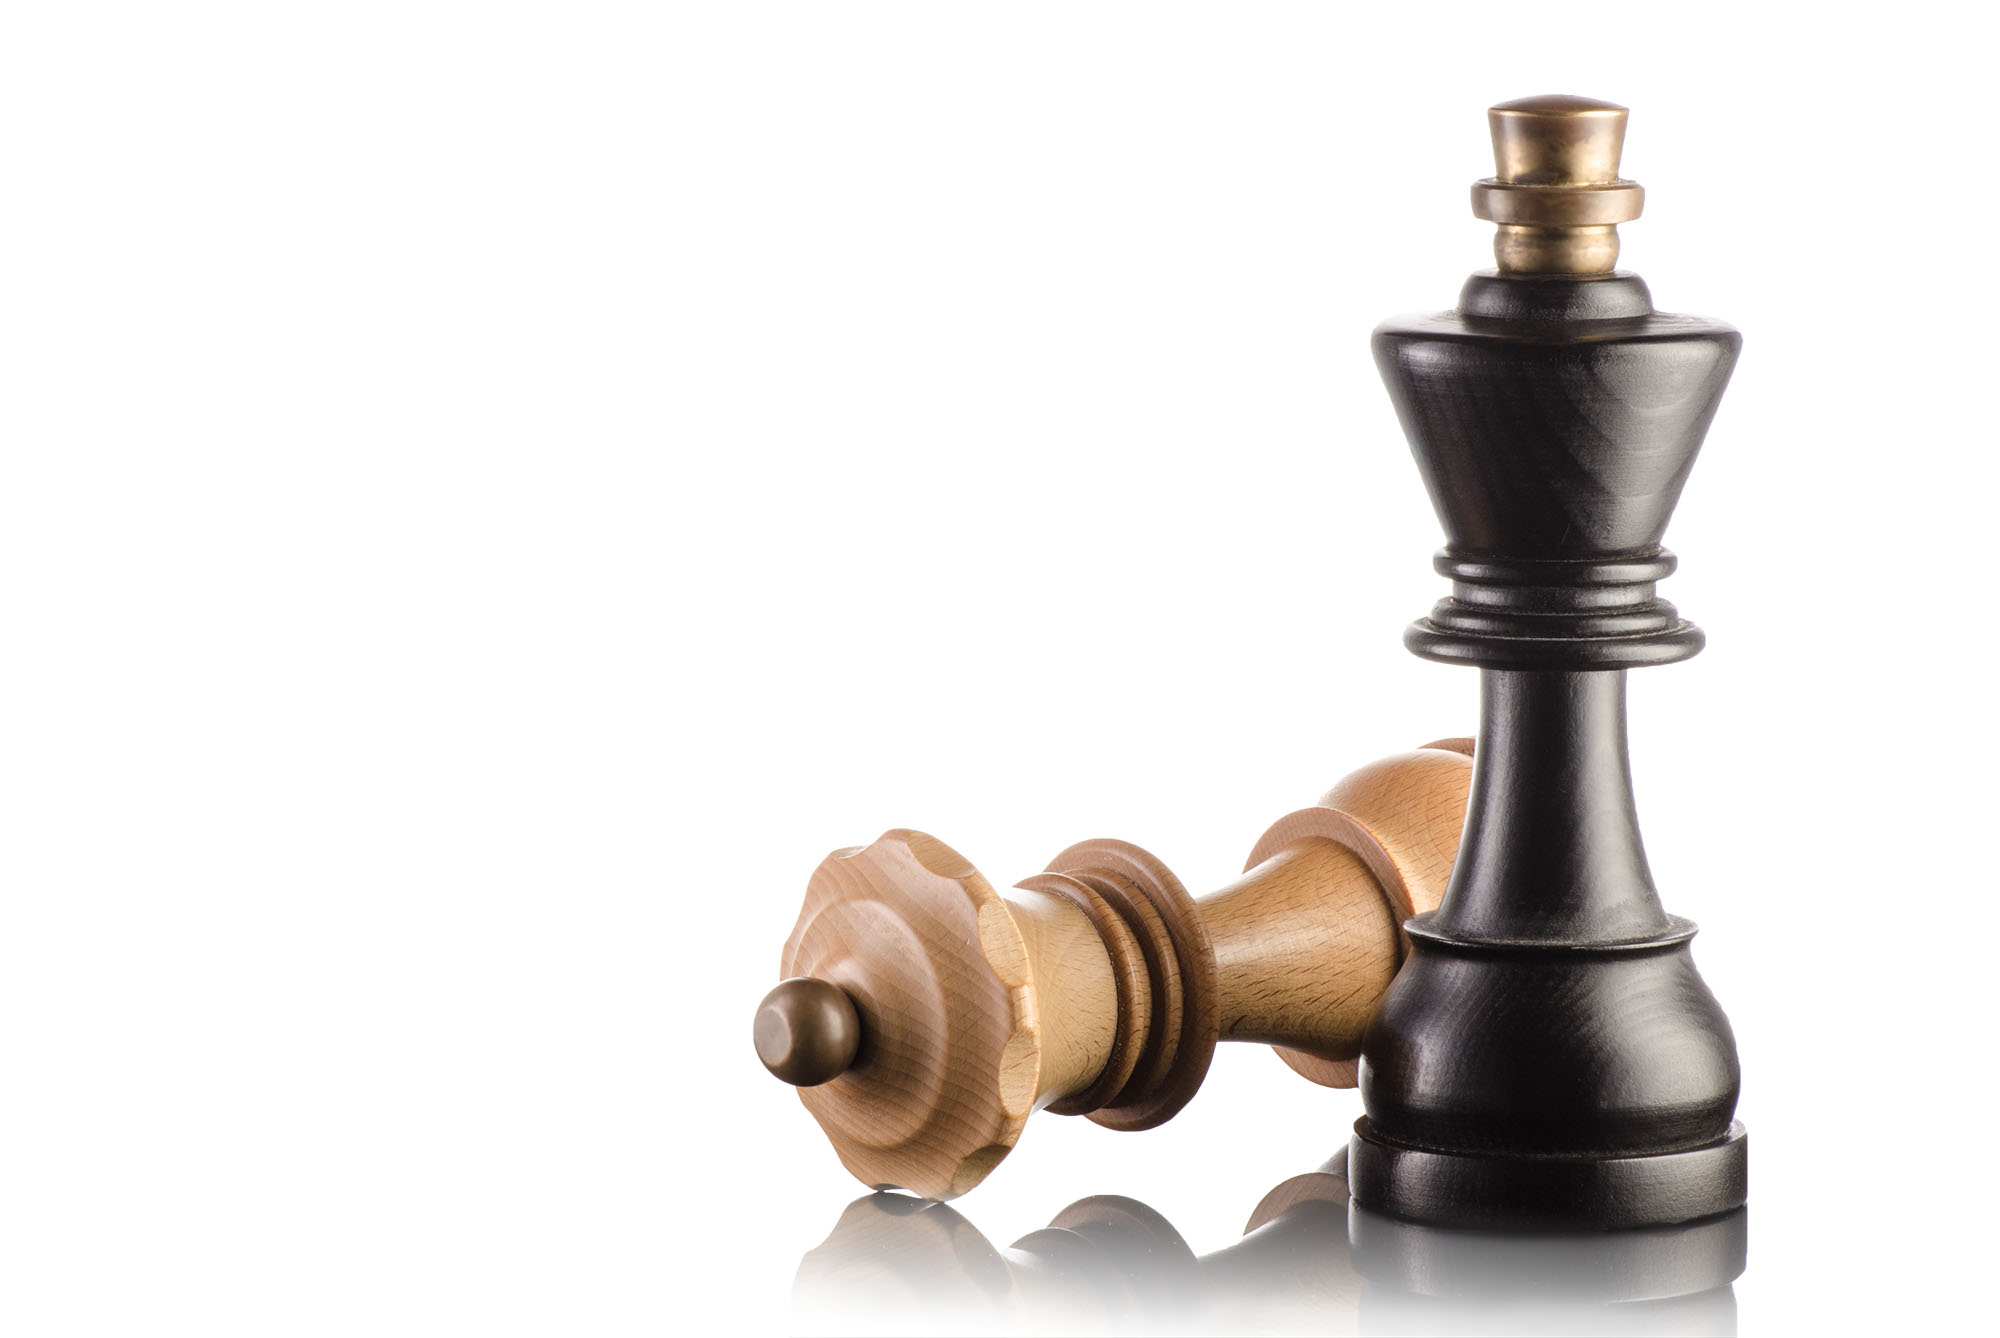 Ian Knaggs Commercial Packshot Photographer - Chess Pieces on Black